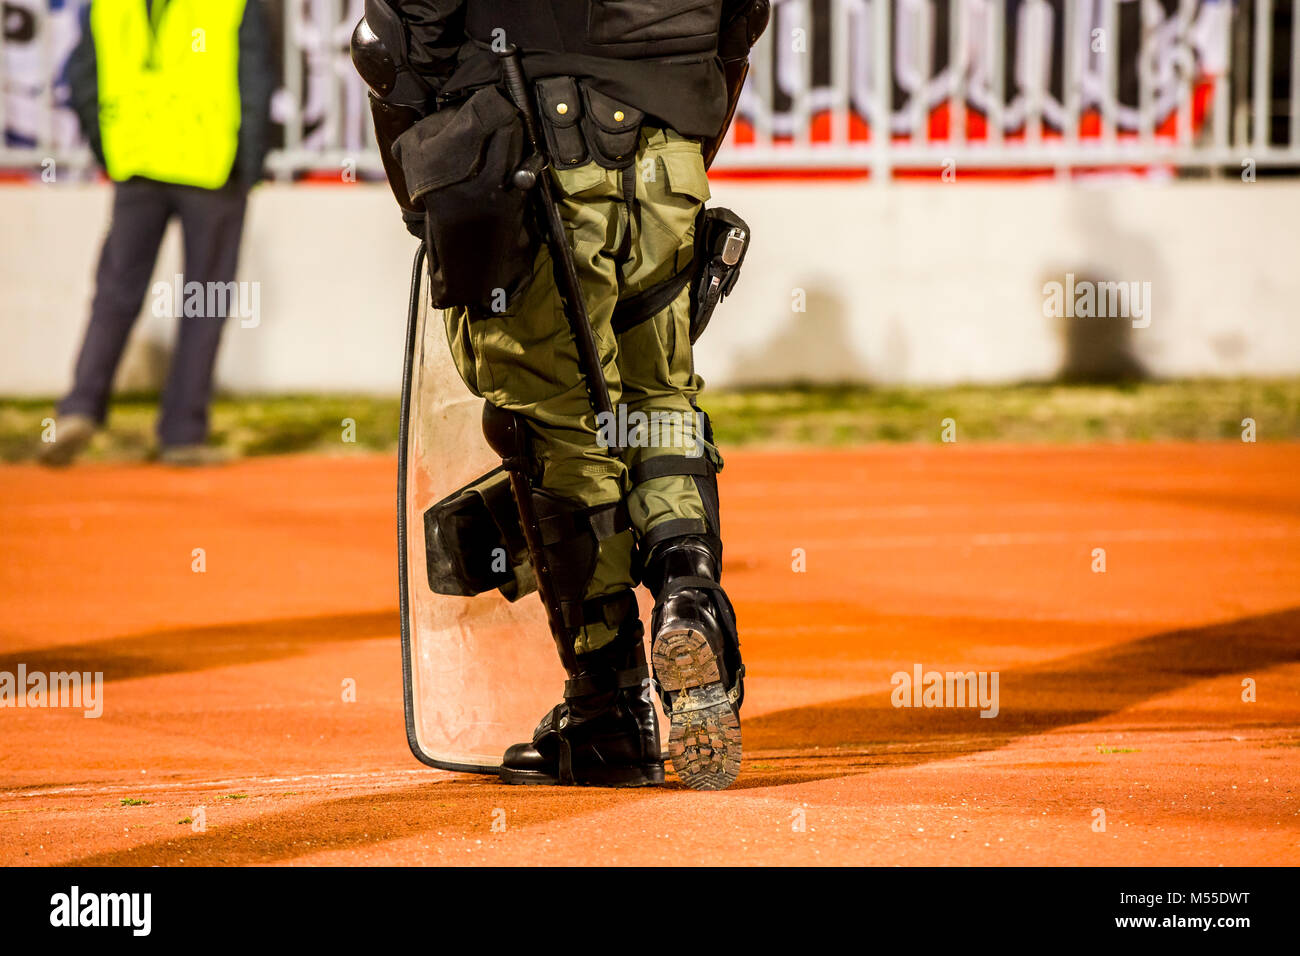 Special police unit at the stadium event secure a safe match against the hooligans - Stock Image